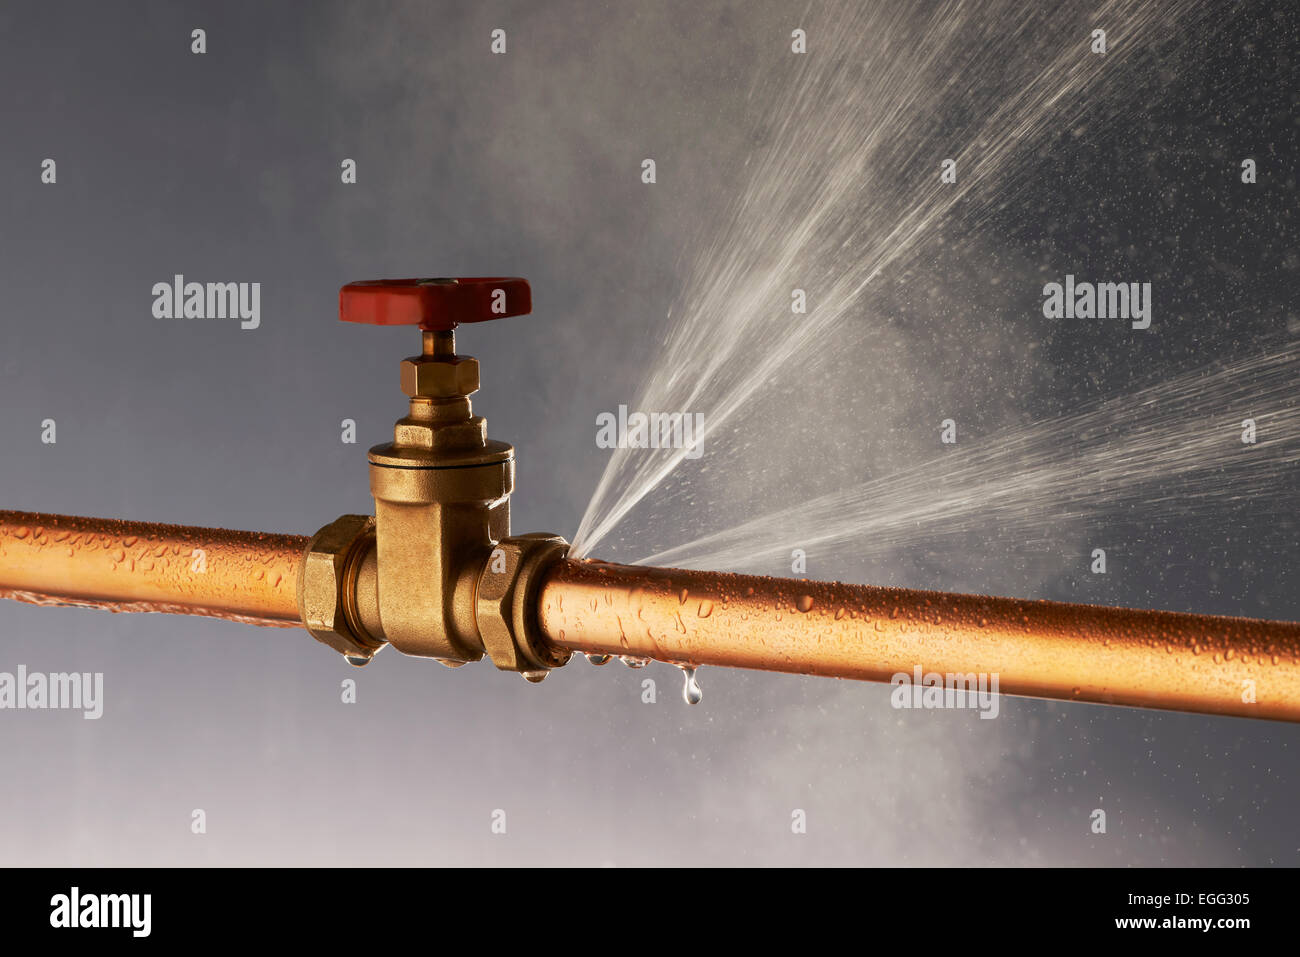 Steam Leak From Pipe : Plumbing burst leaking pipe with tap stock photo royalty